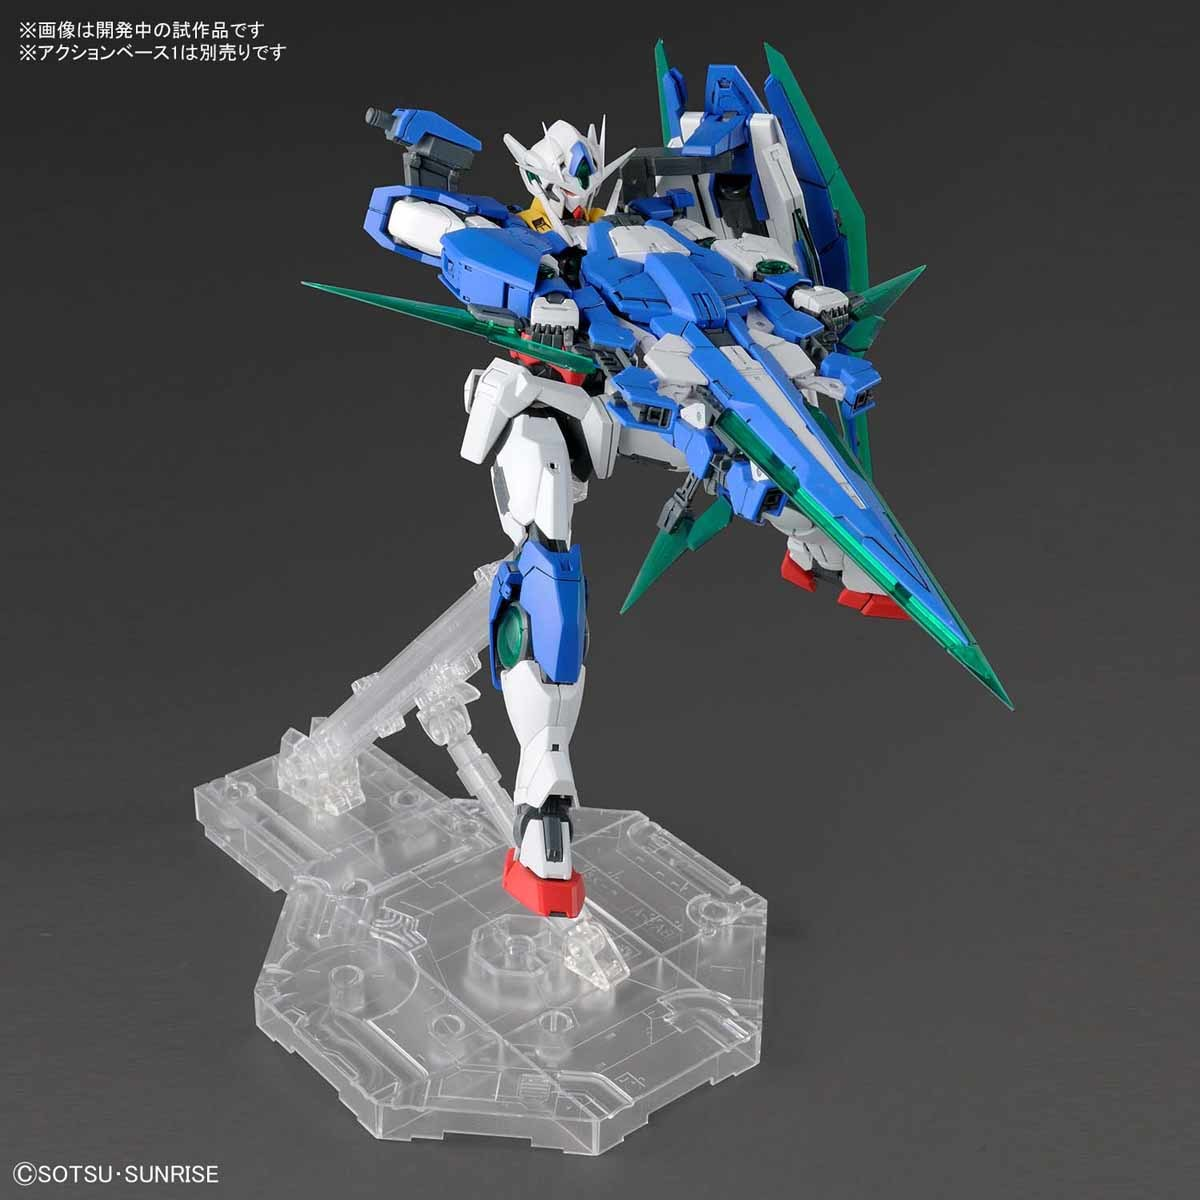 MG 1/100 00 Quanta Full Saber long range mode